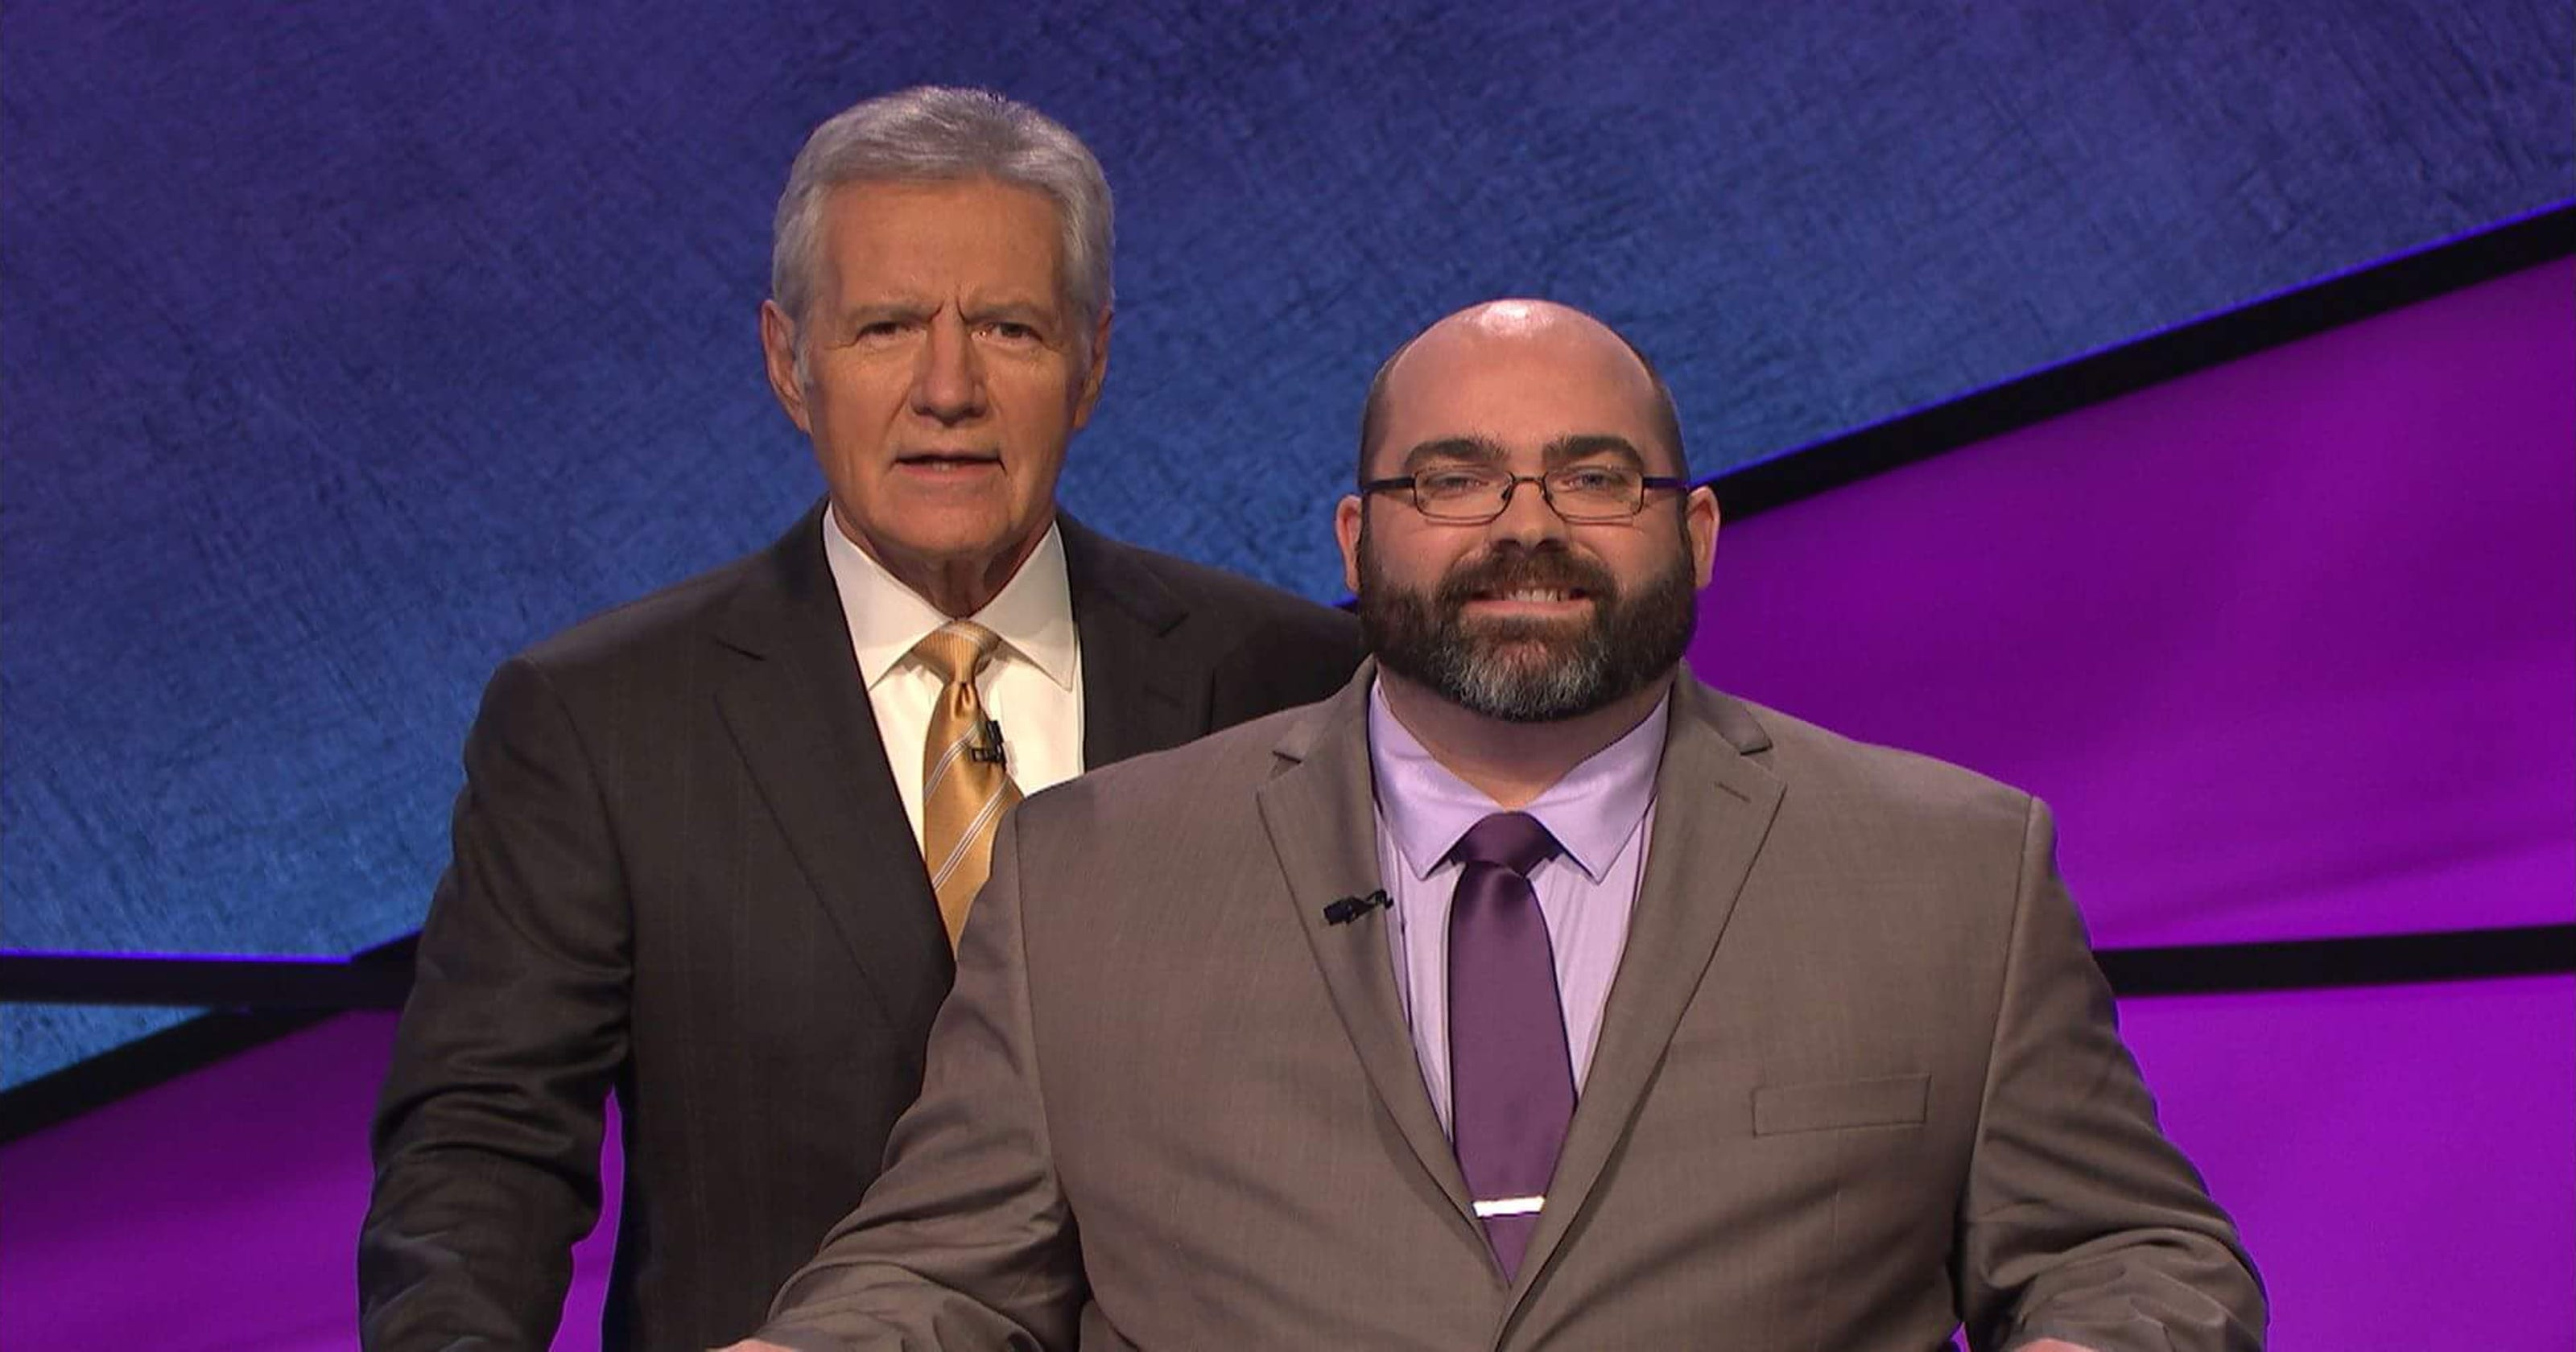 Central Wisconsin native to appear on 'Jeopardy!'